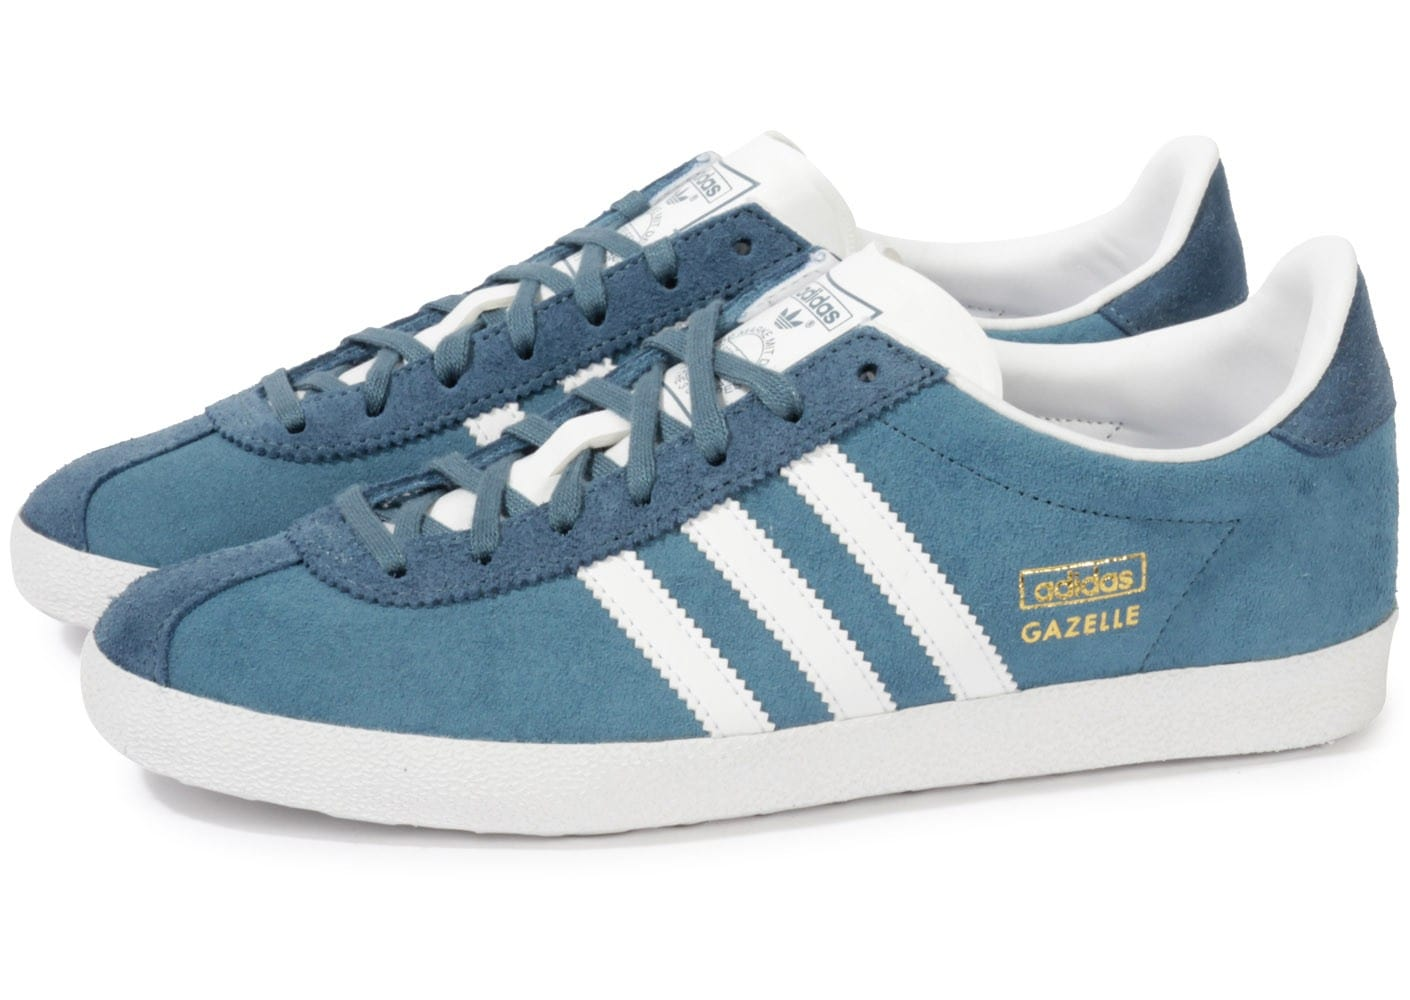 Gazelle Baskets Og Bleue Homme Chaussures Adidas Chausport QxBedorCW